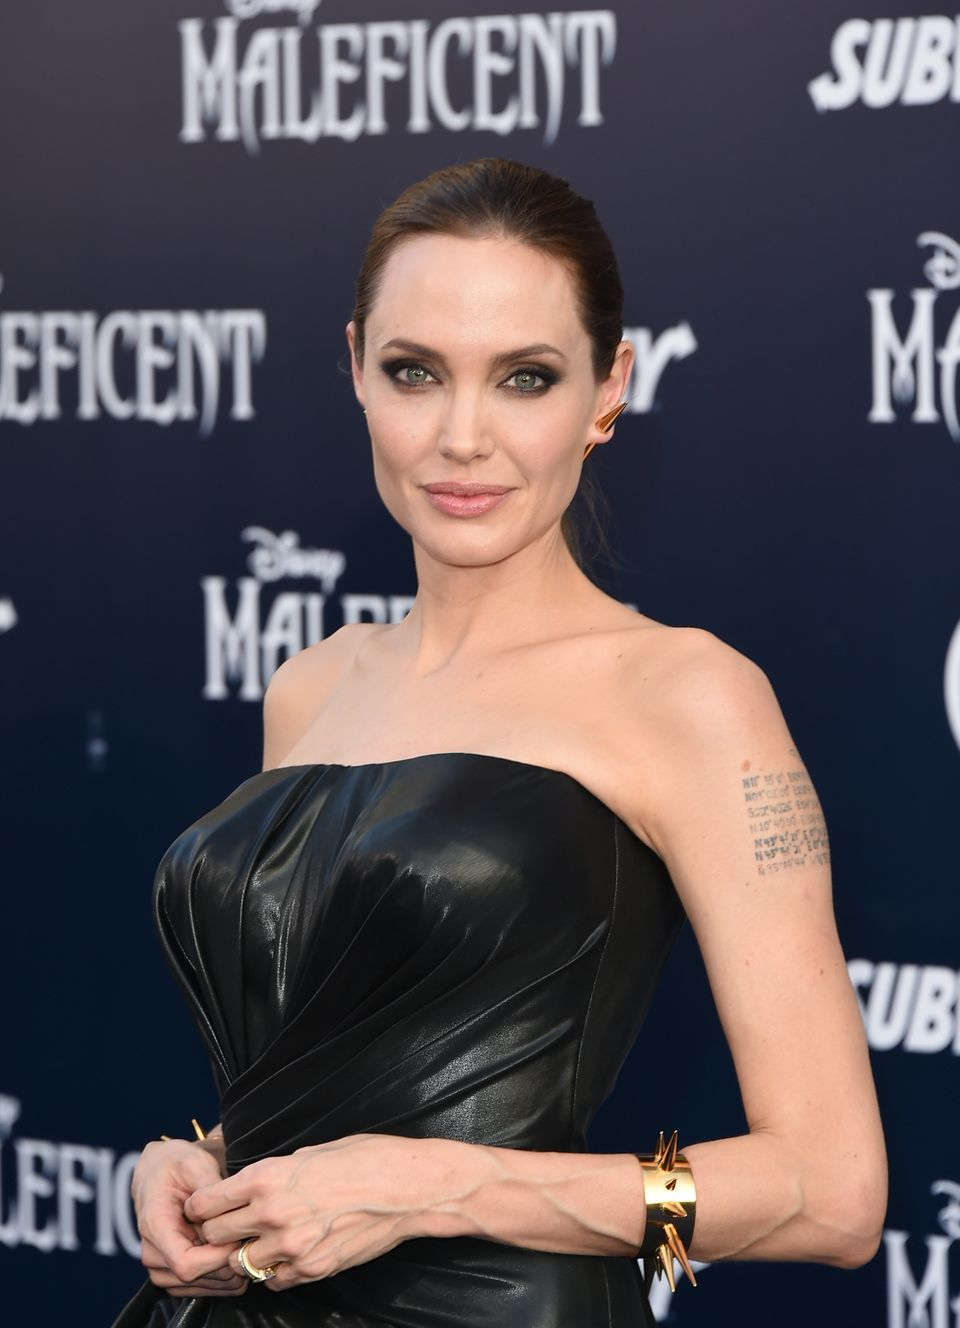 HOLLYWOOD, CA - MAY 28:  Actress Angelina Jolie attends the World Premiere of Disney's 'Maleficent' at the El Capitan Theatre